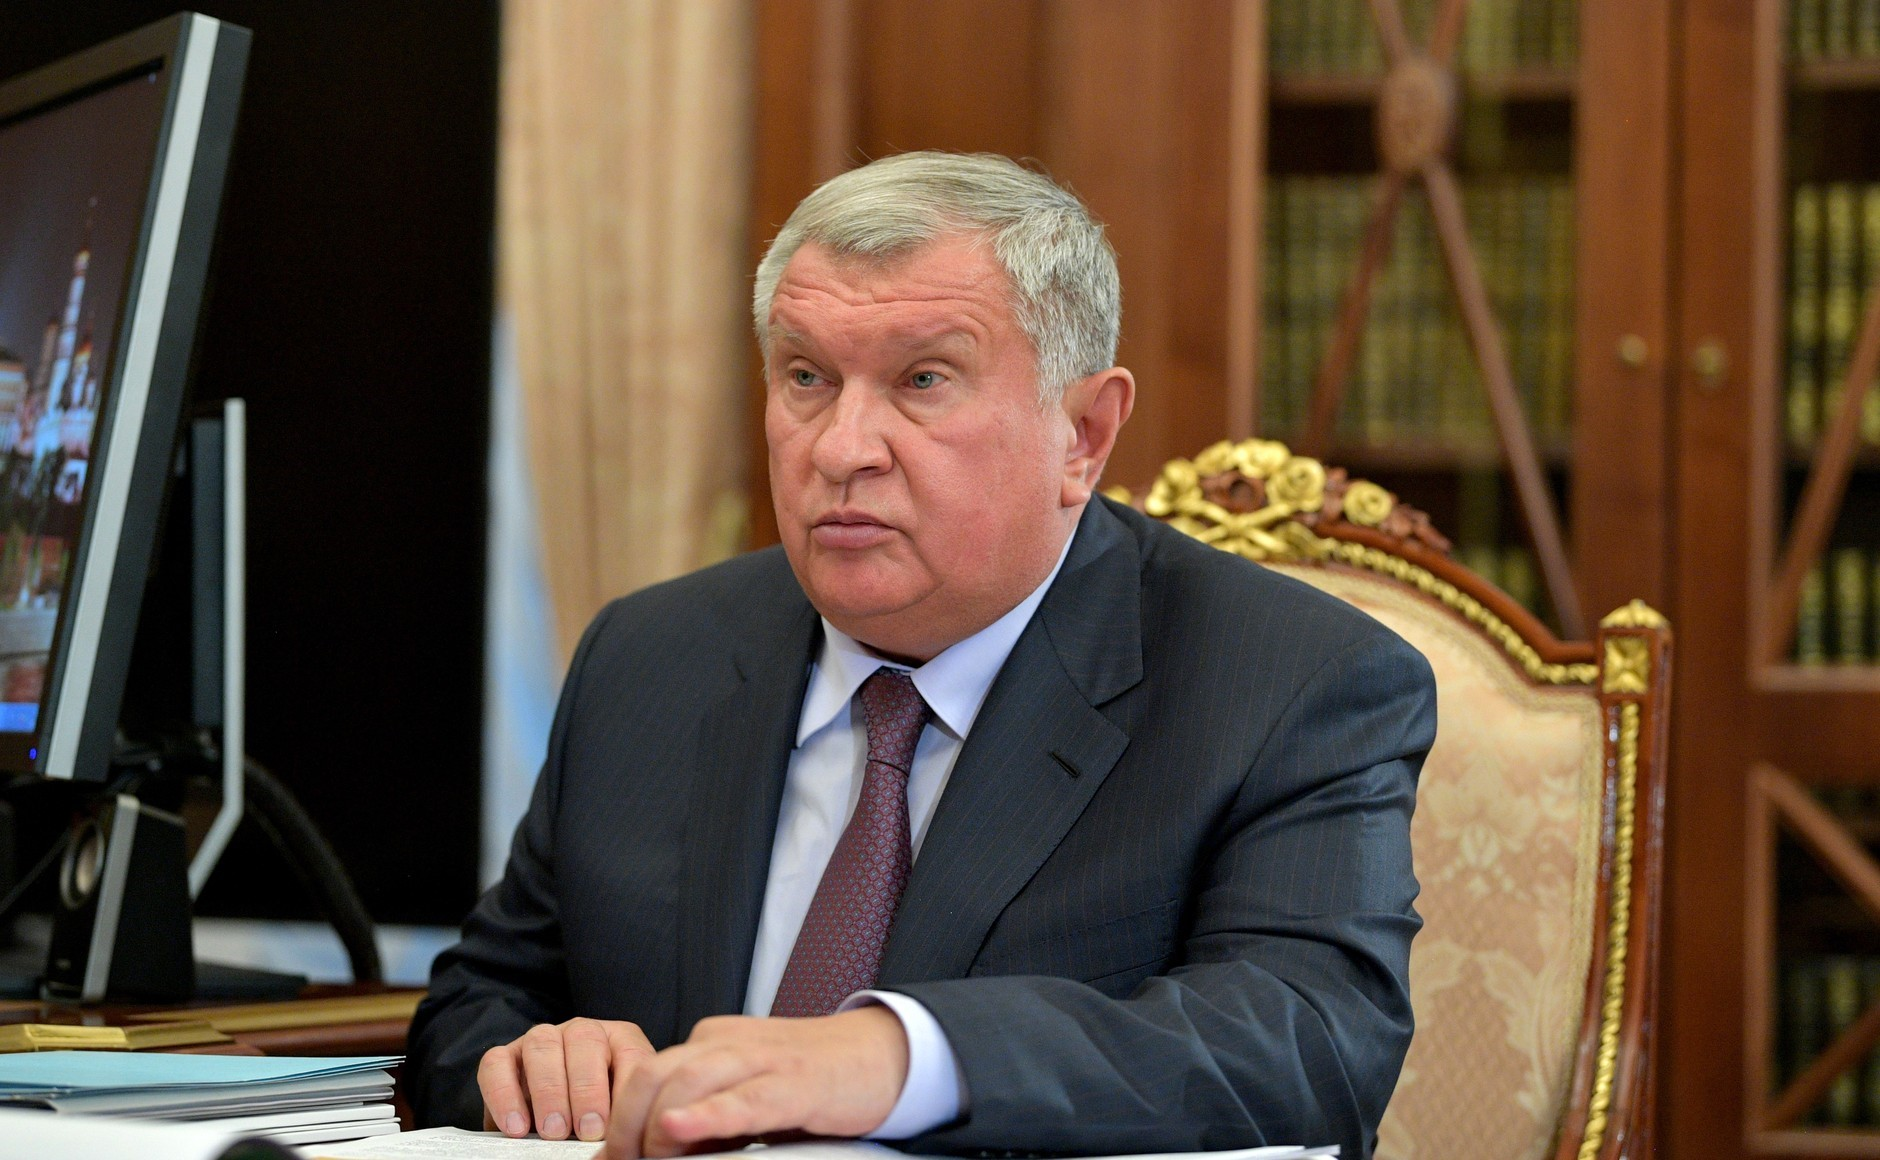 Russian Oil Tycoon Embroiled in War, Sechin Becomes Public Enemy No. 1